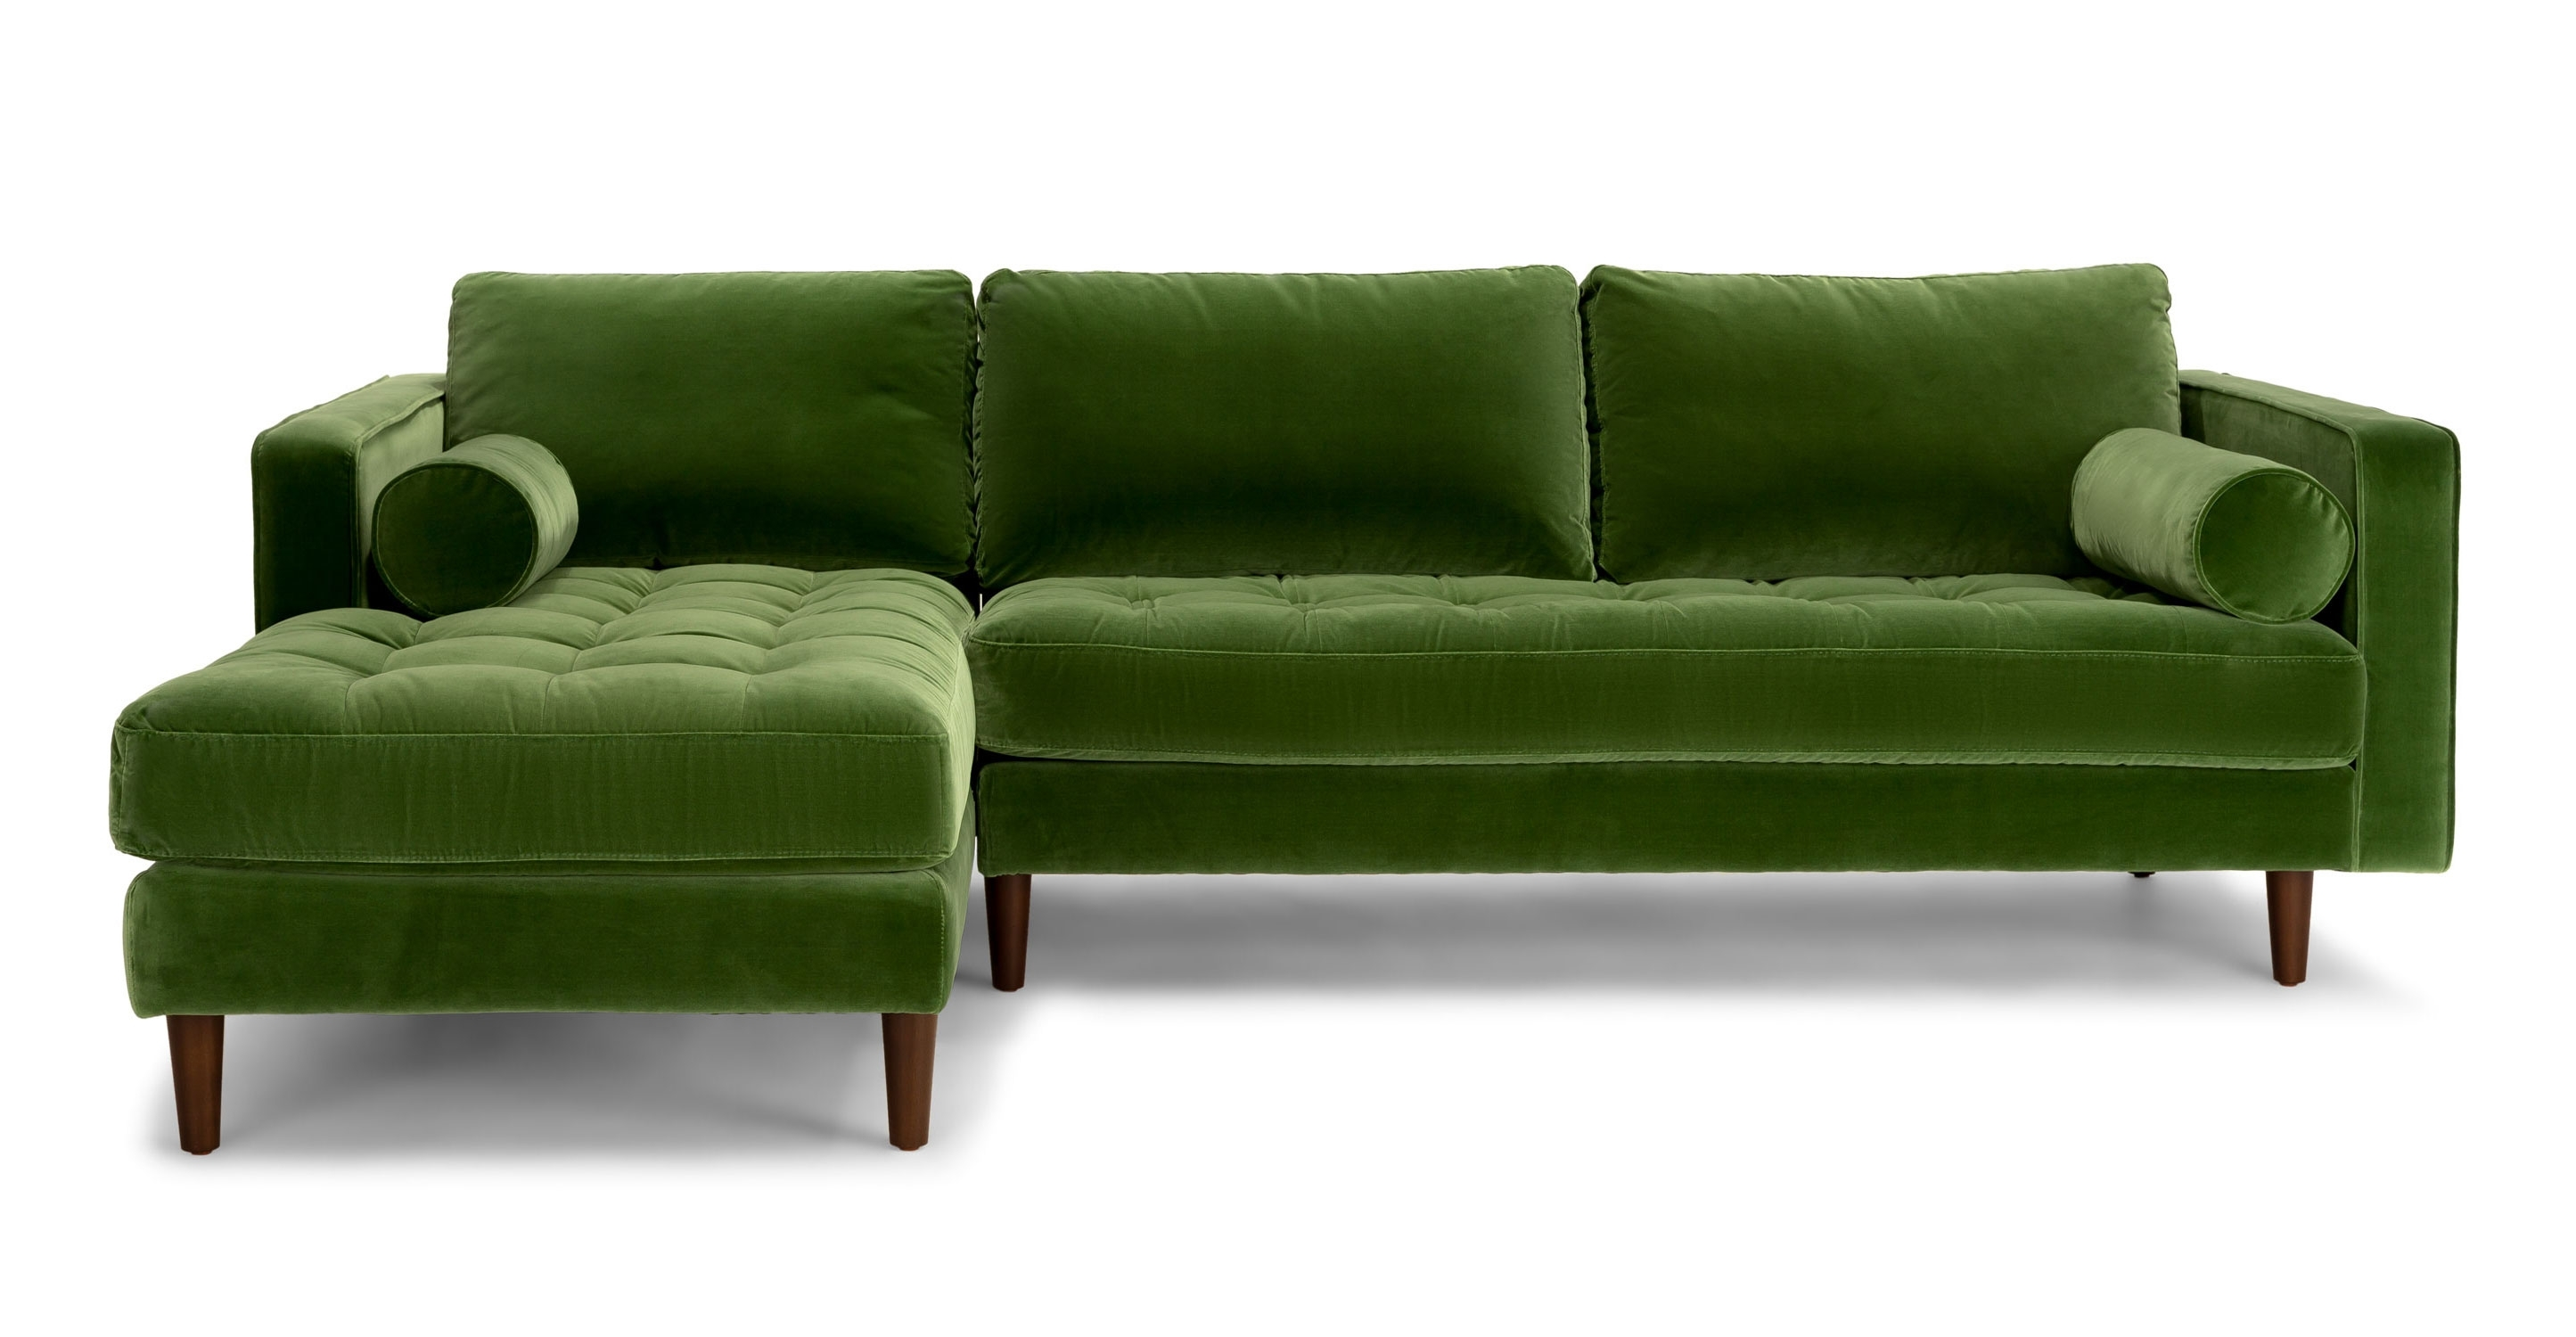 Olive Green Chenille Fabrical Sofa Seafoam Emerald Leather Sage For Green Sectional Sofas (View 2 of 10)